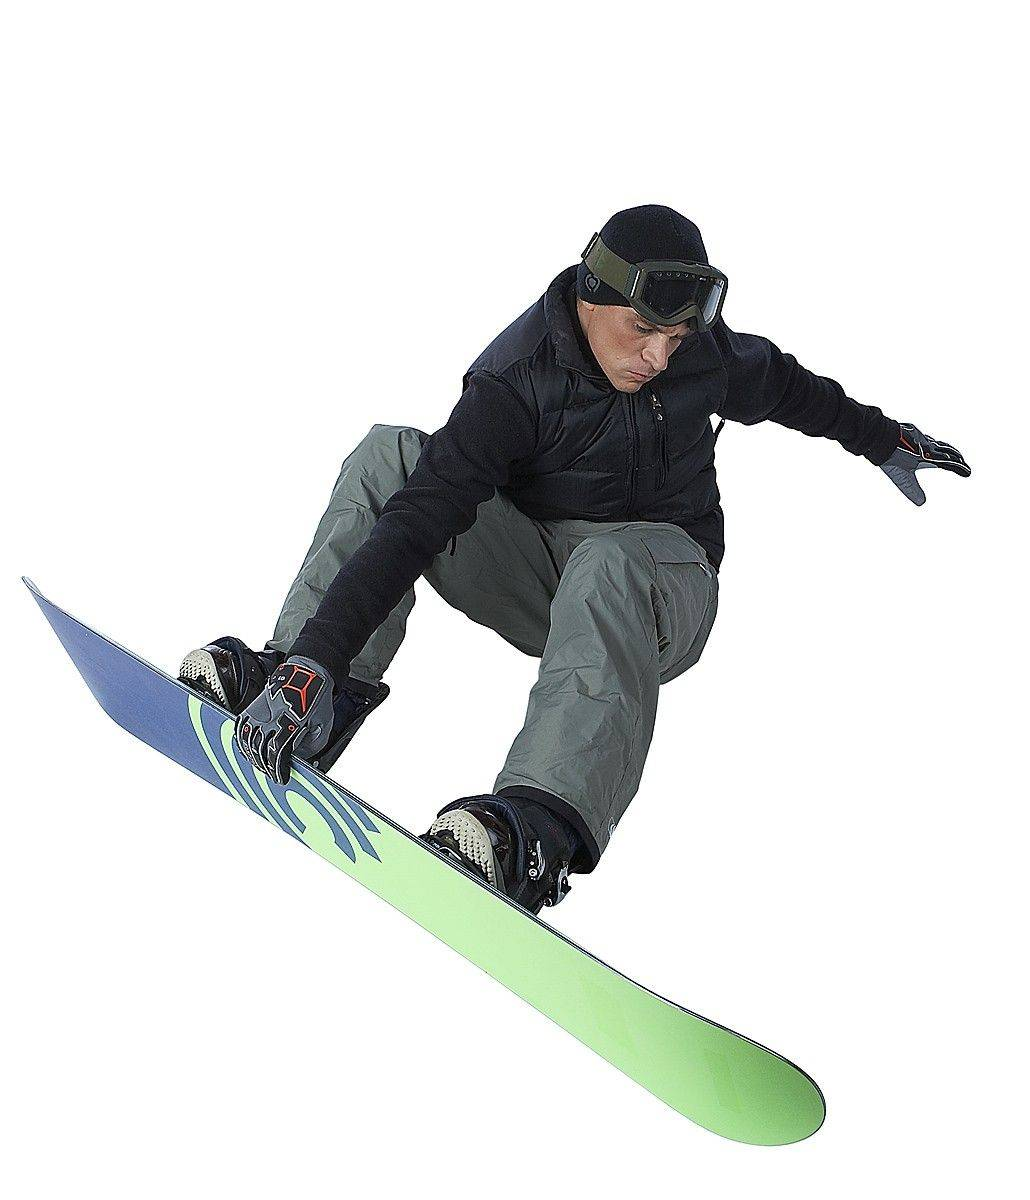 The Windy City Ski and Snowboard Show comes to the Renaissance Schaumburg Hotel and Convention Center this weekend.